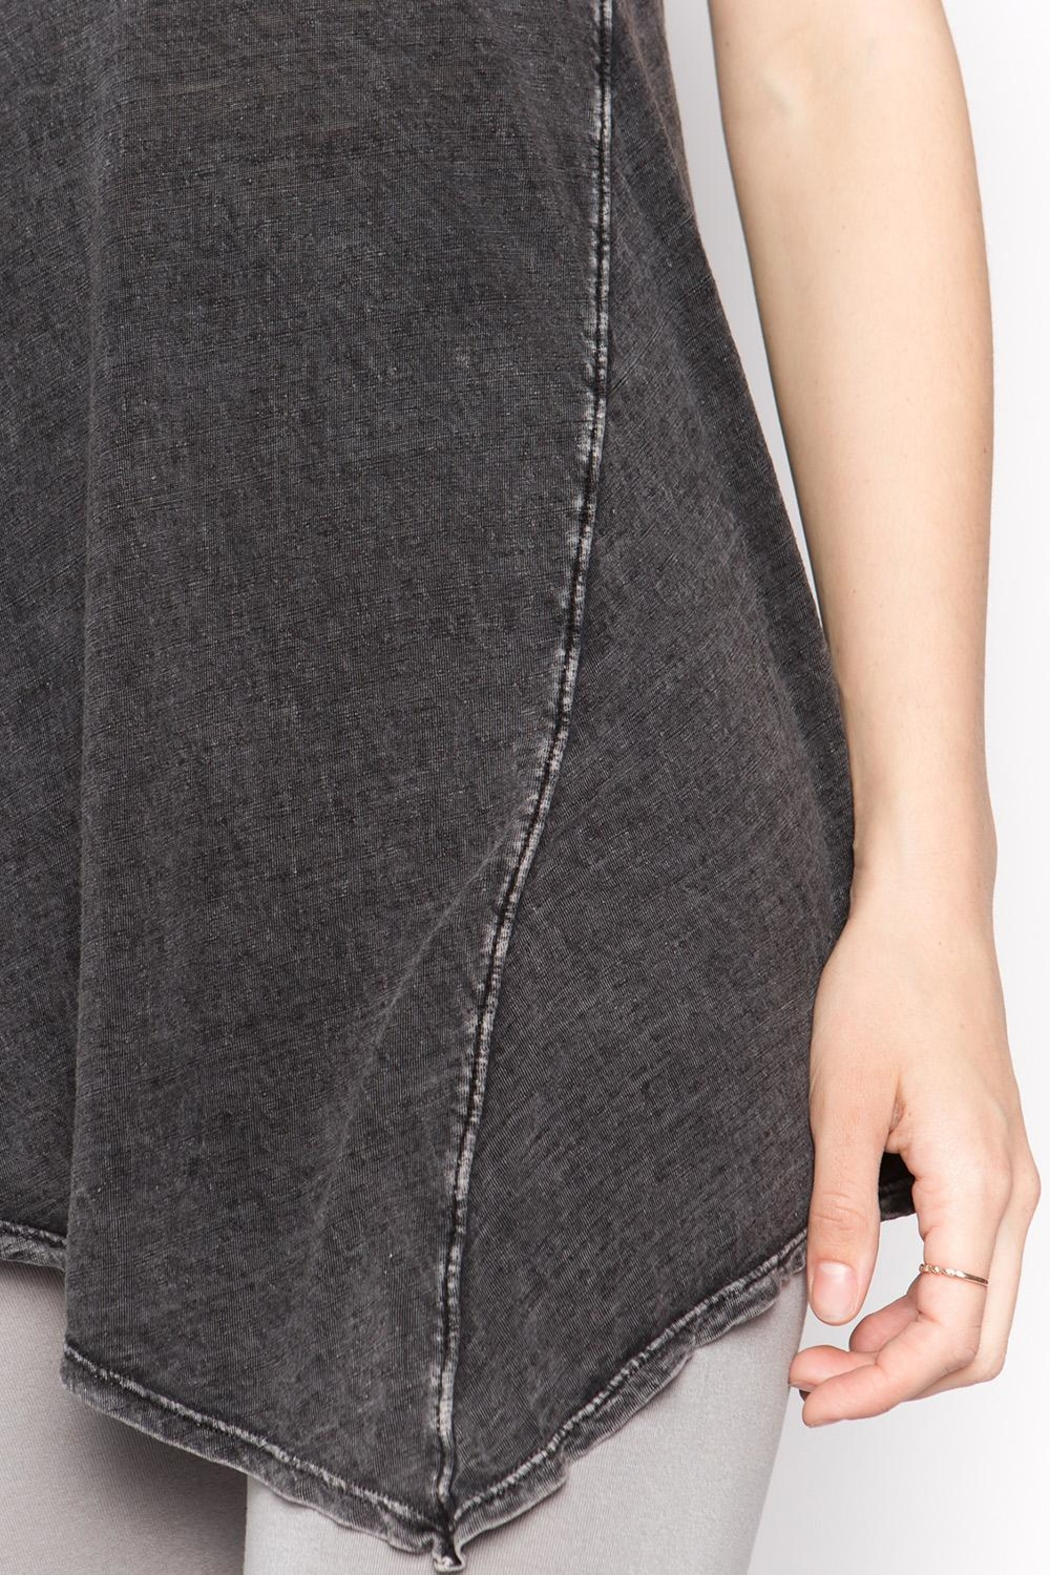 M. Rena Mineral Wash Tunic - Side Cropped Image